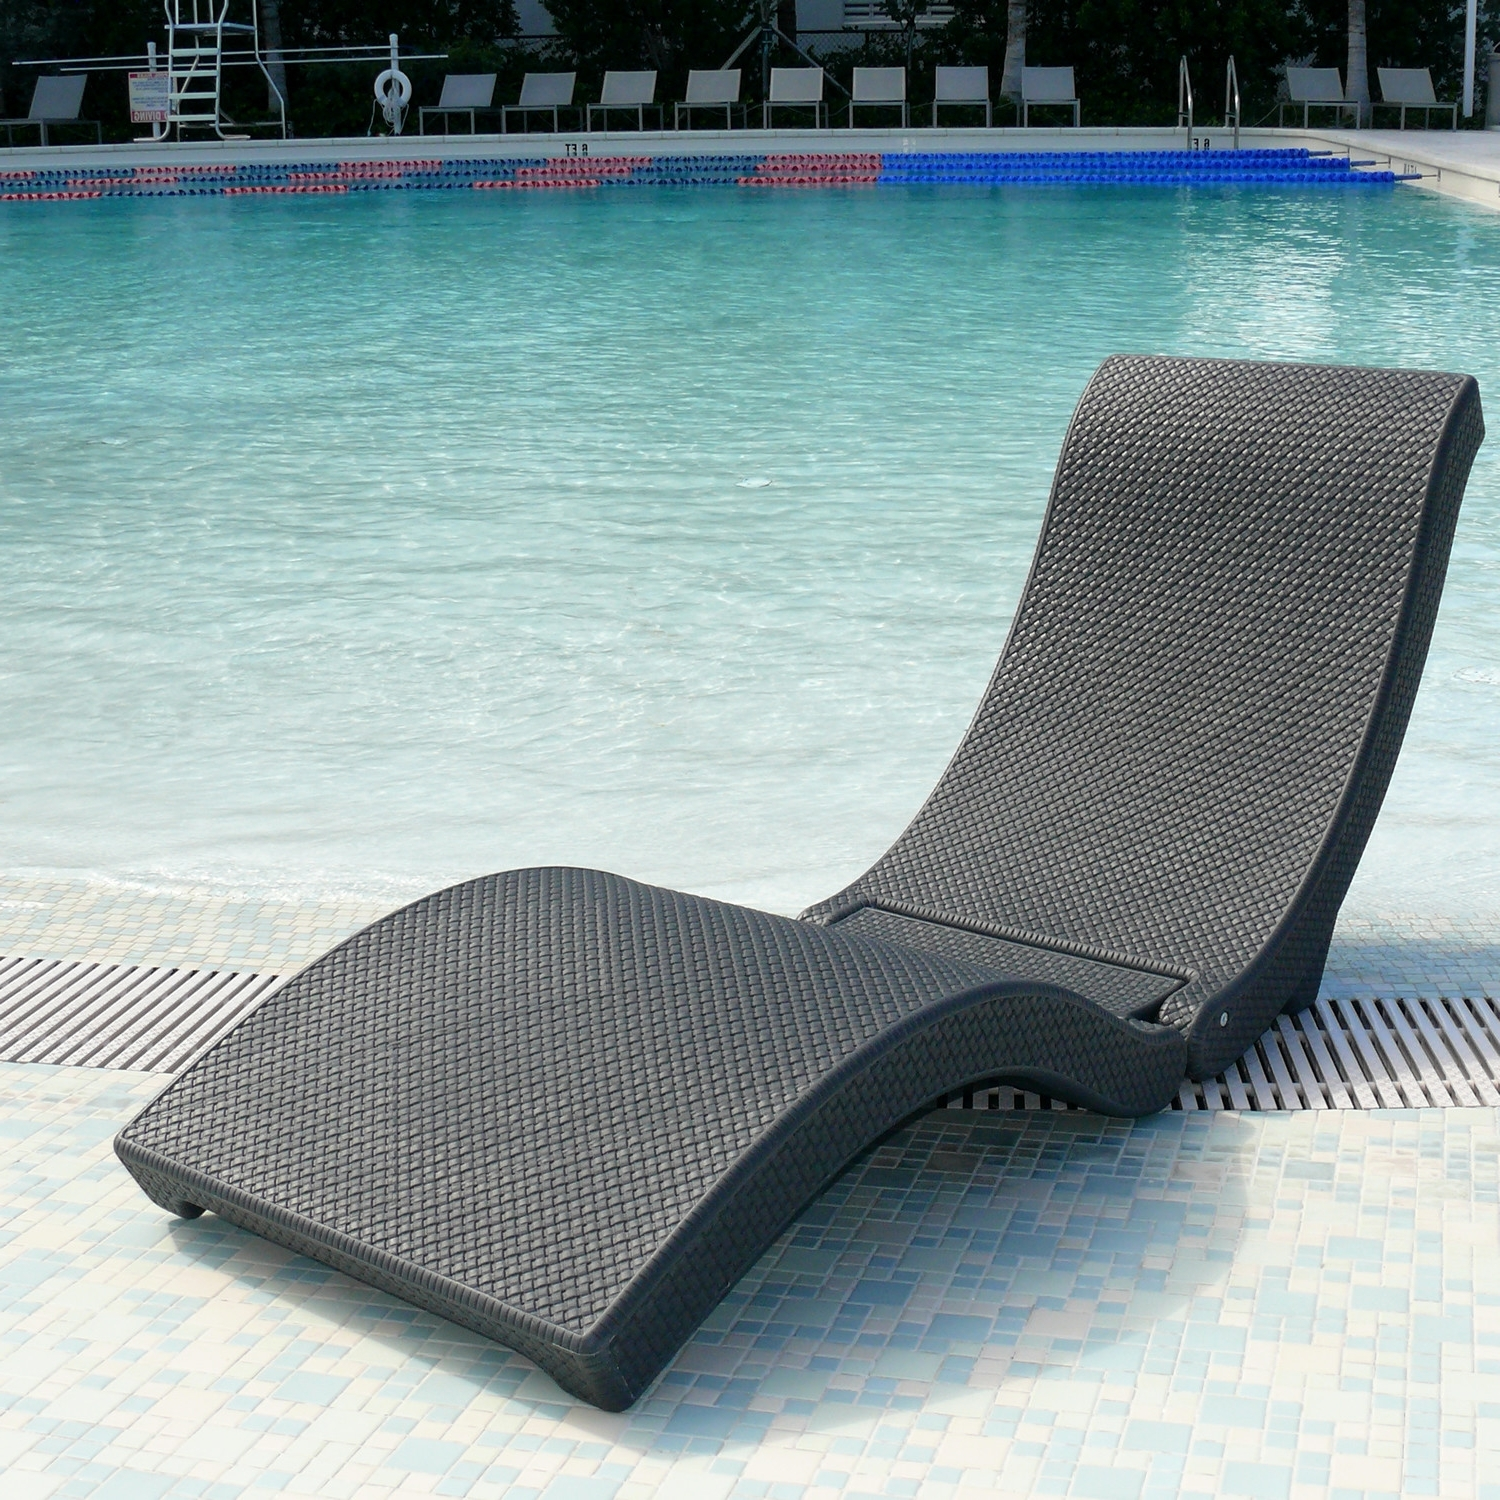 Pinterest Within Pool Chaise Lounge Chairs (View 15 of 15)